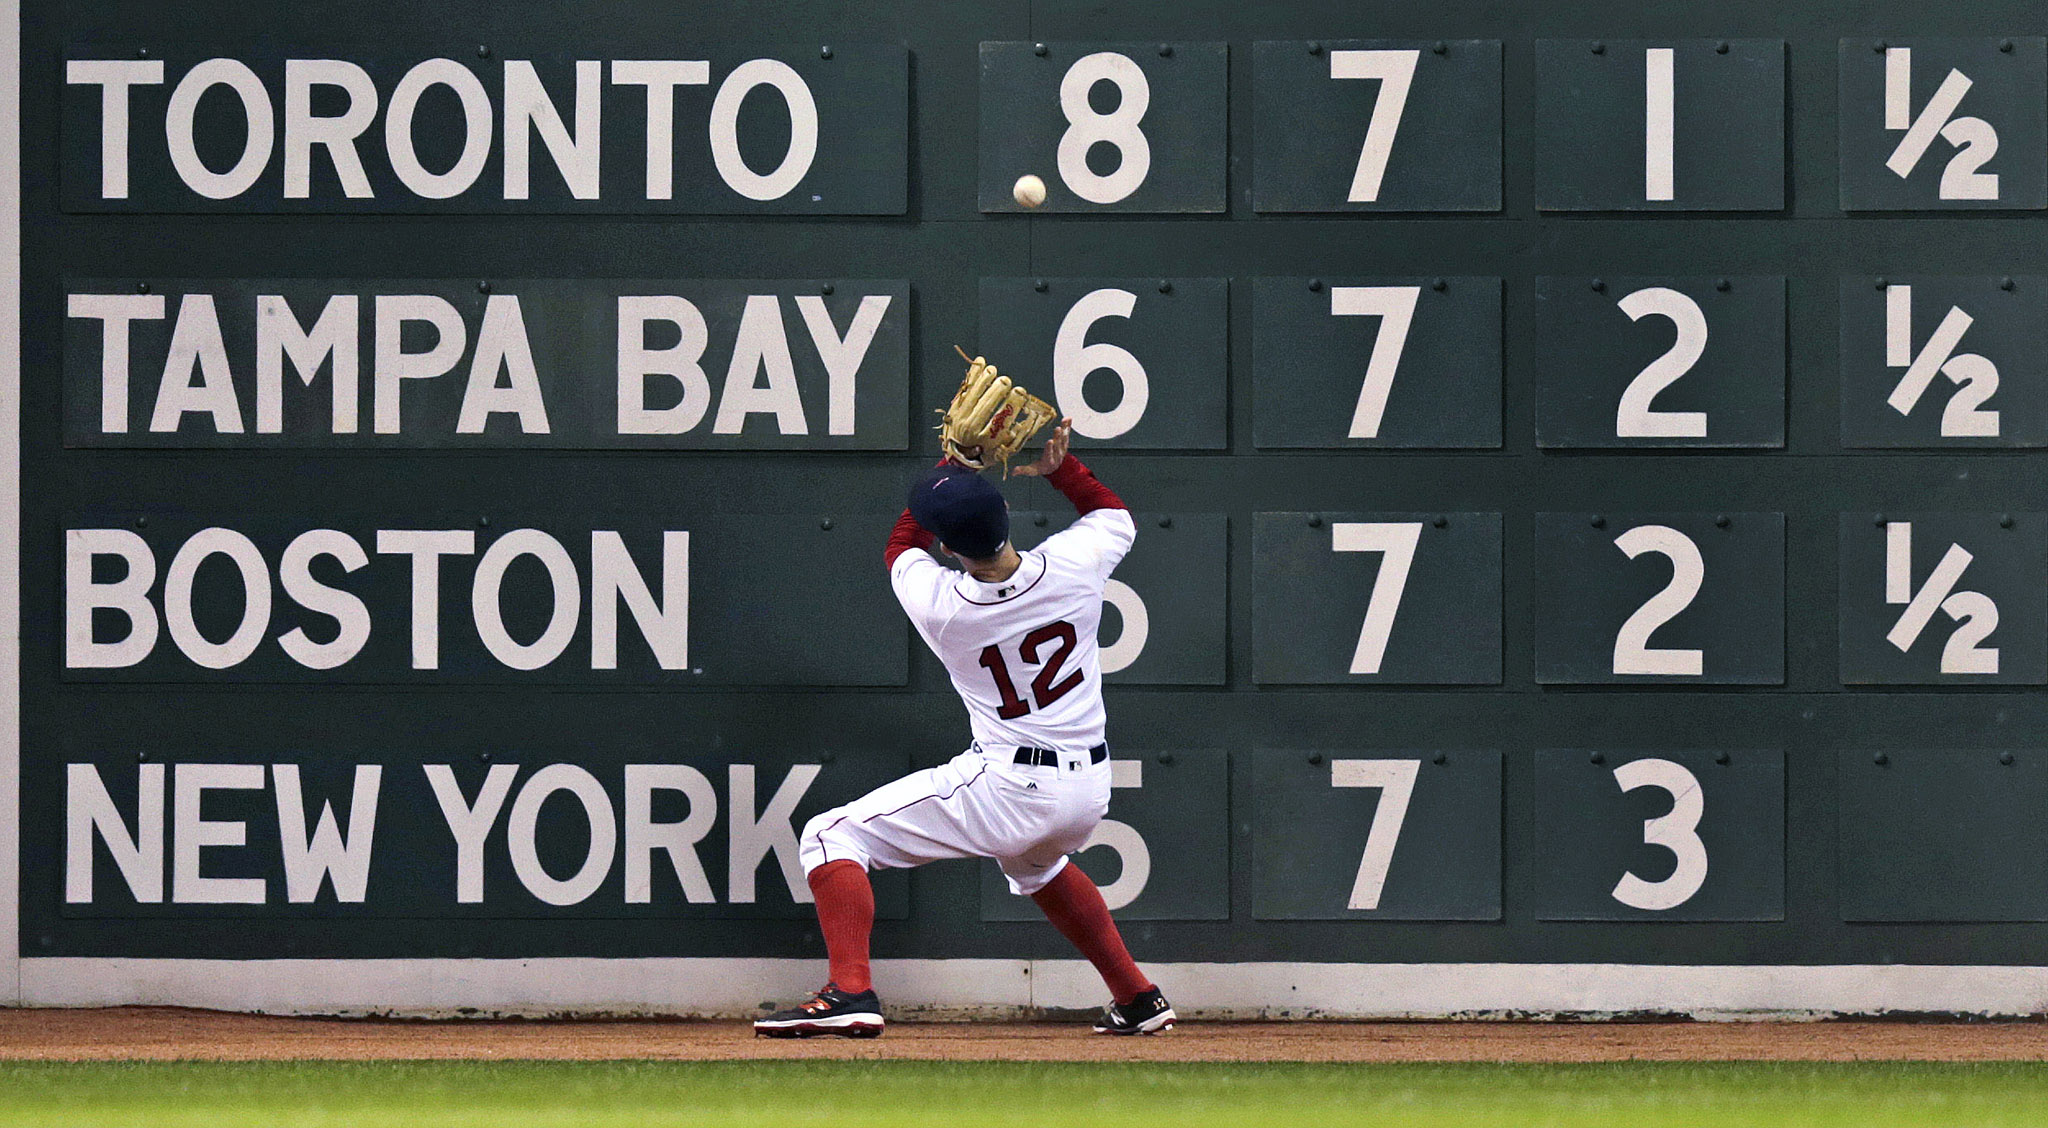 Brock Holt...Boston Red Sox left fielder Brock Holt (12) plays a double by Tampa Bay Rays designated hitter Corey Dickerson off the wall during fourth inning of a baseball game in Boston, Wednesday, April 20, 2016. (AP Photo/Charles Krupa)